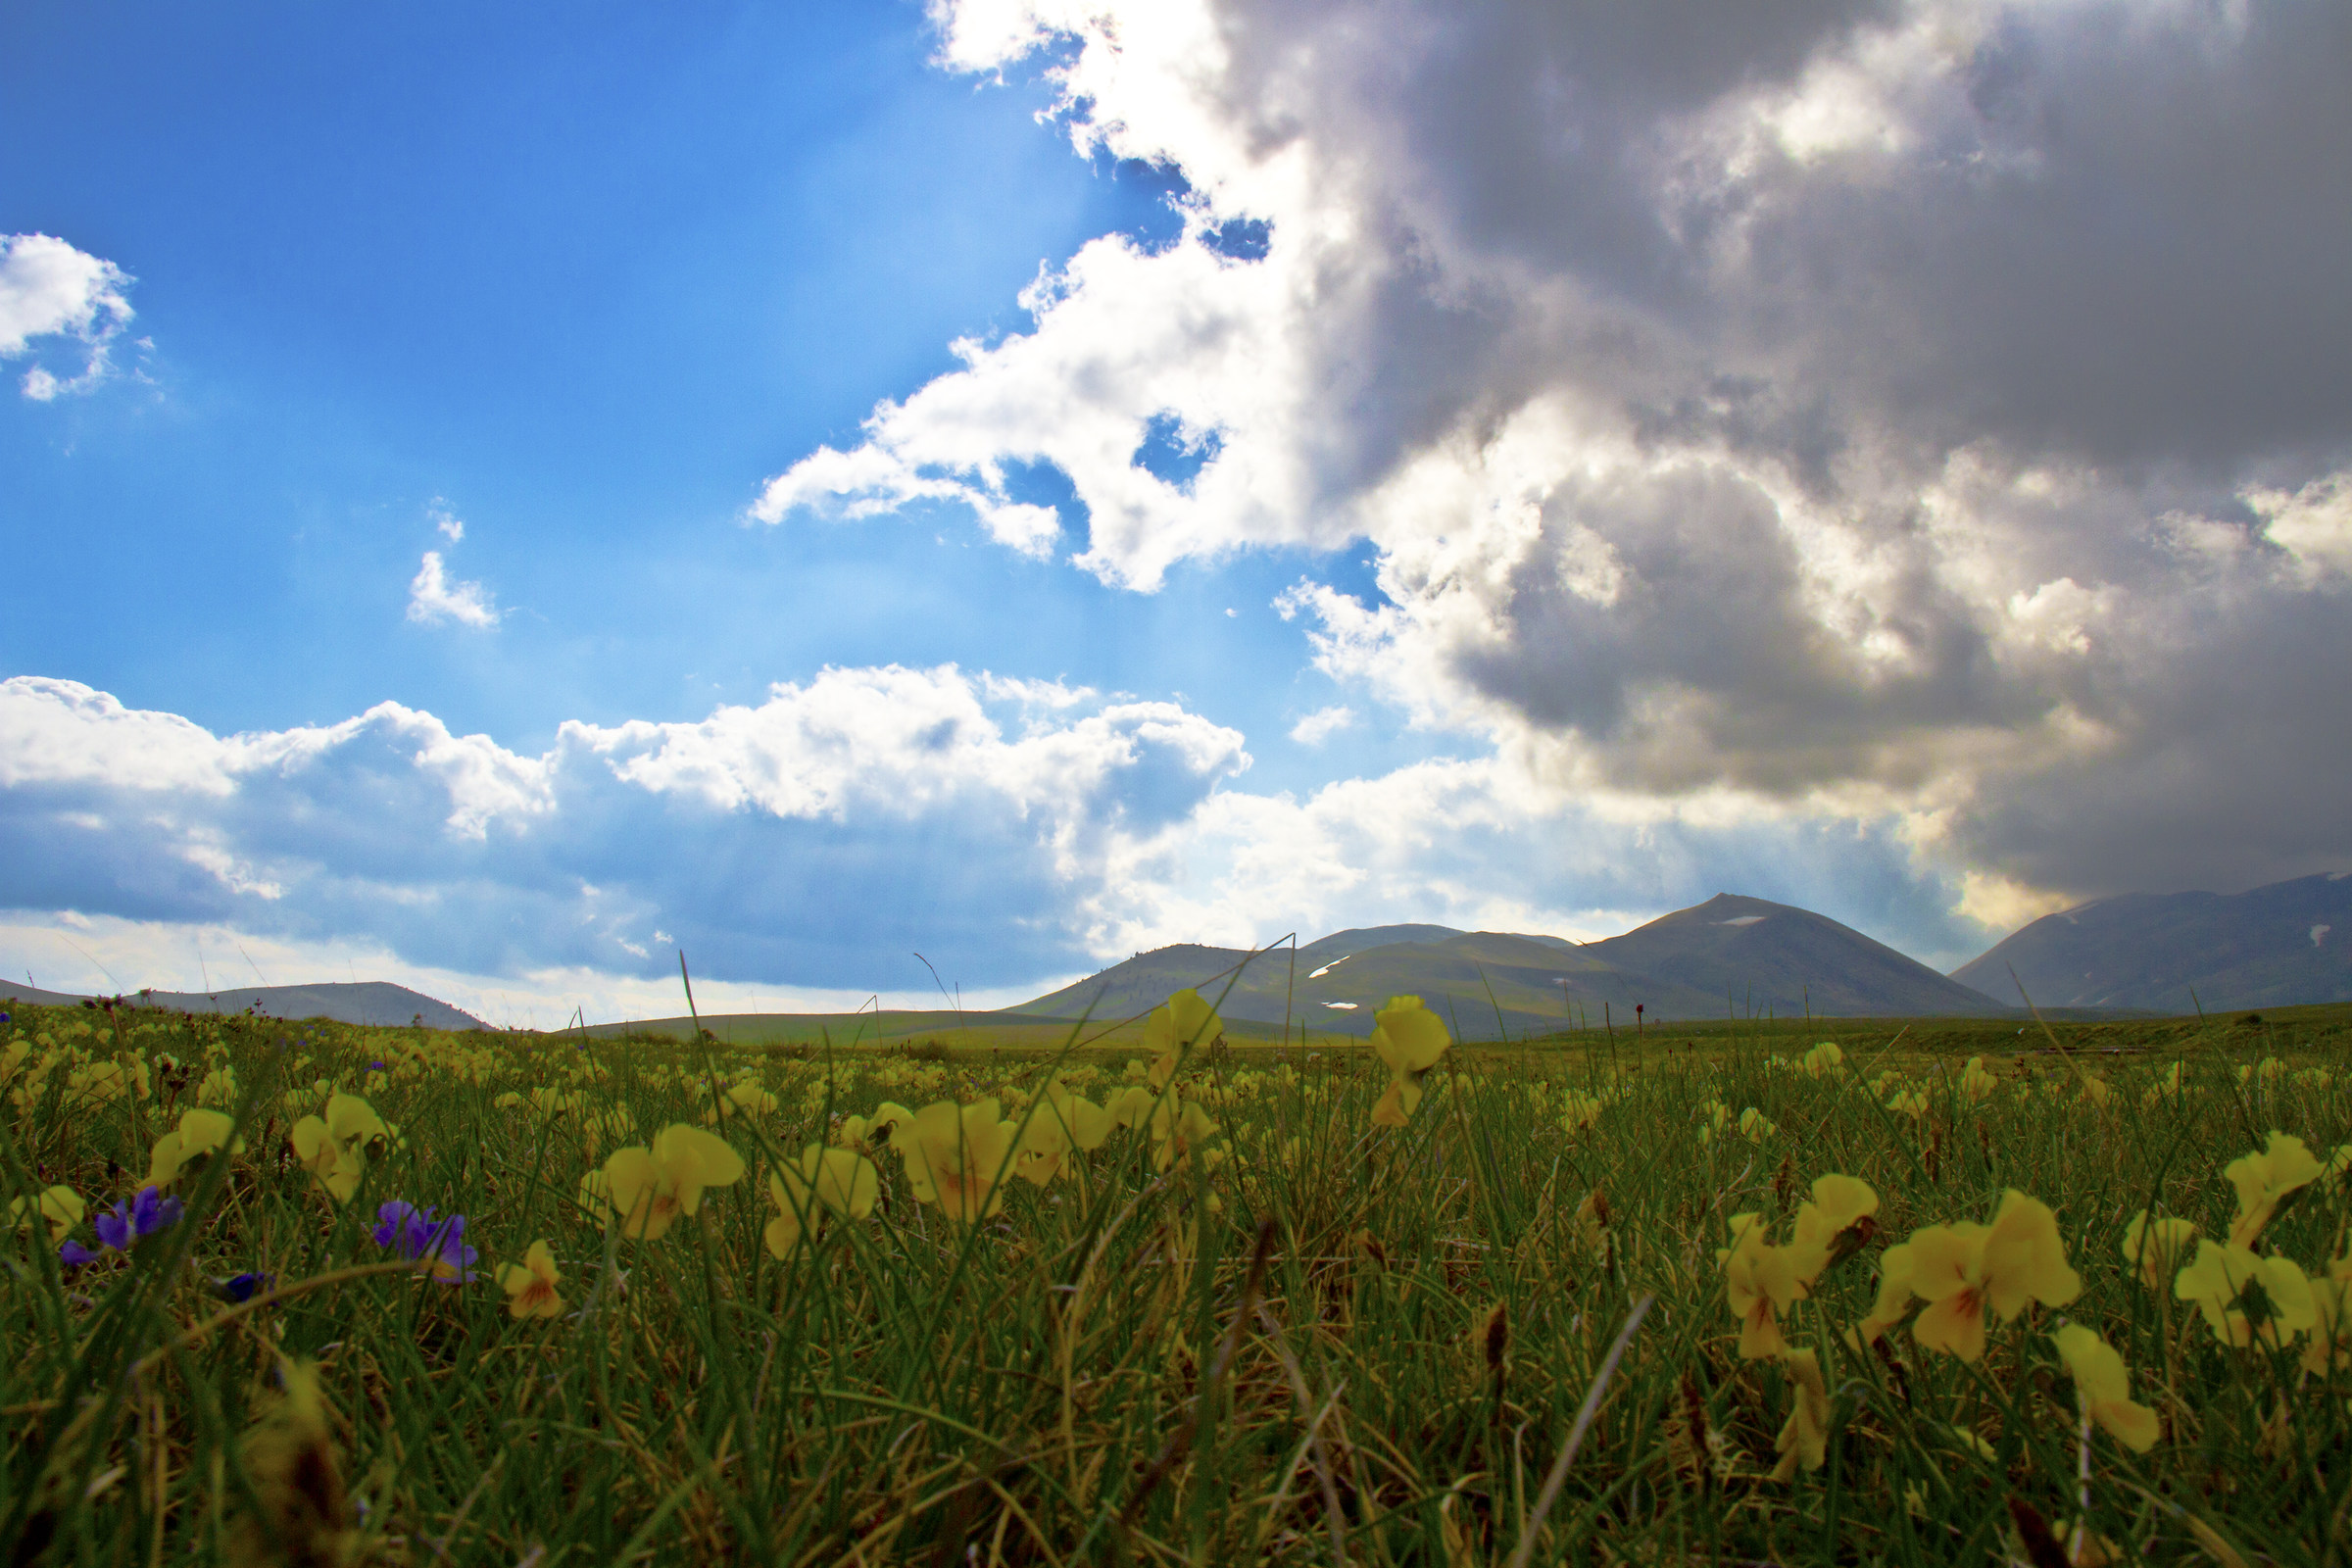 On the ground of Campo Imperatore (aq)...